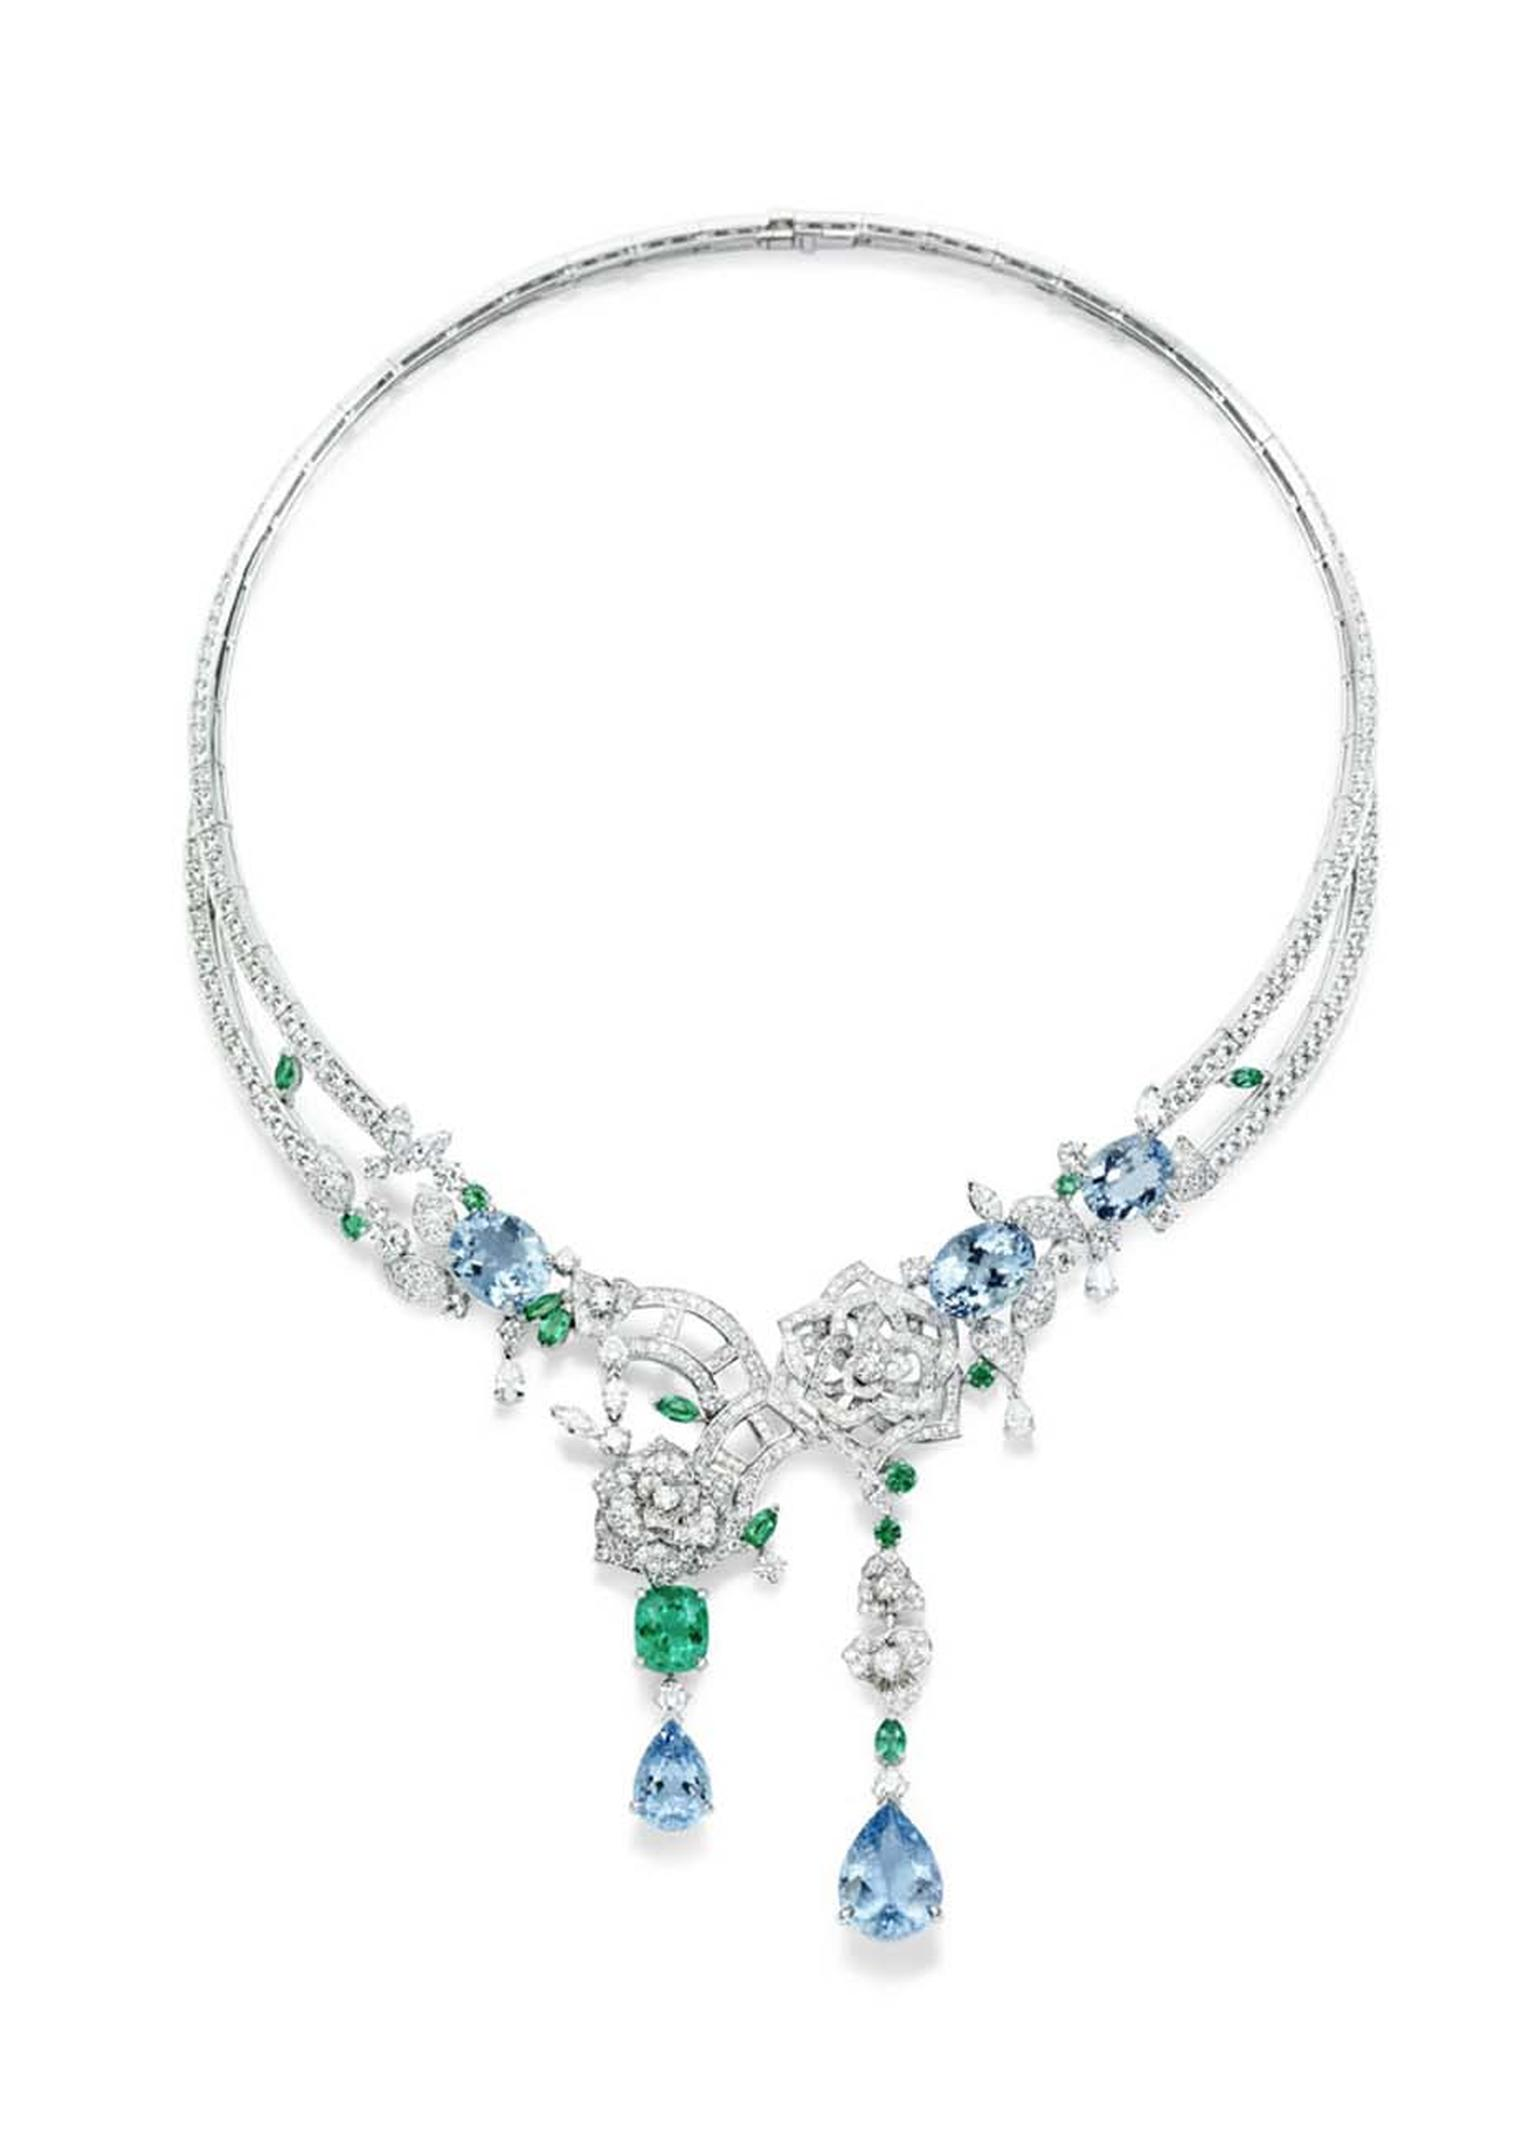 Piaget Rose Passion necklace in white gold, set with tourmalines, topaz and diamonds